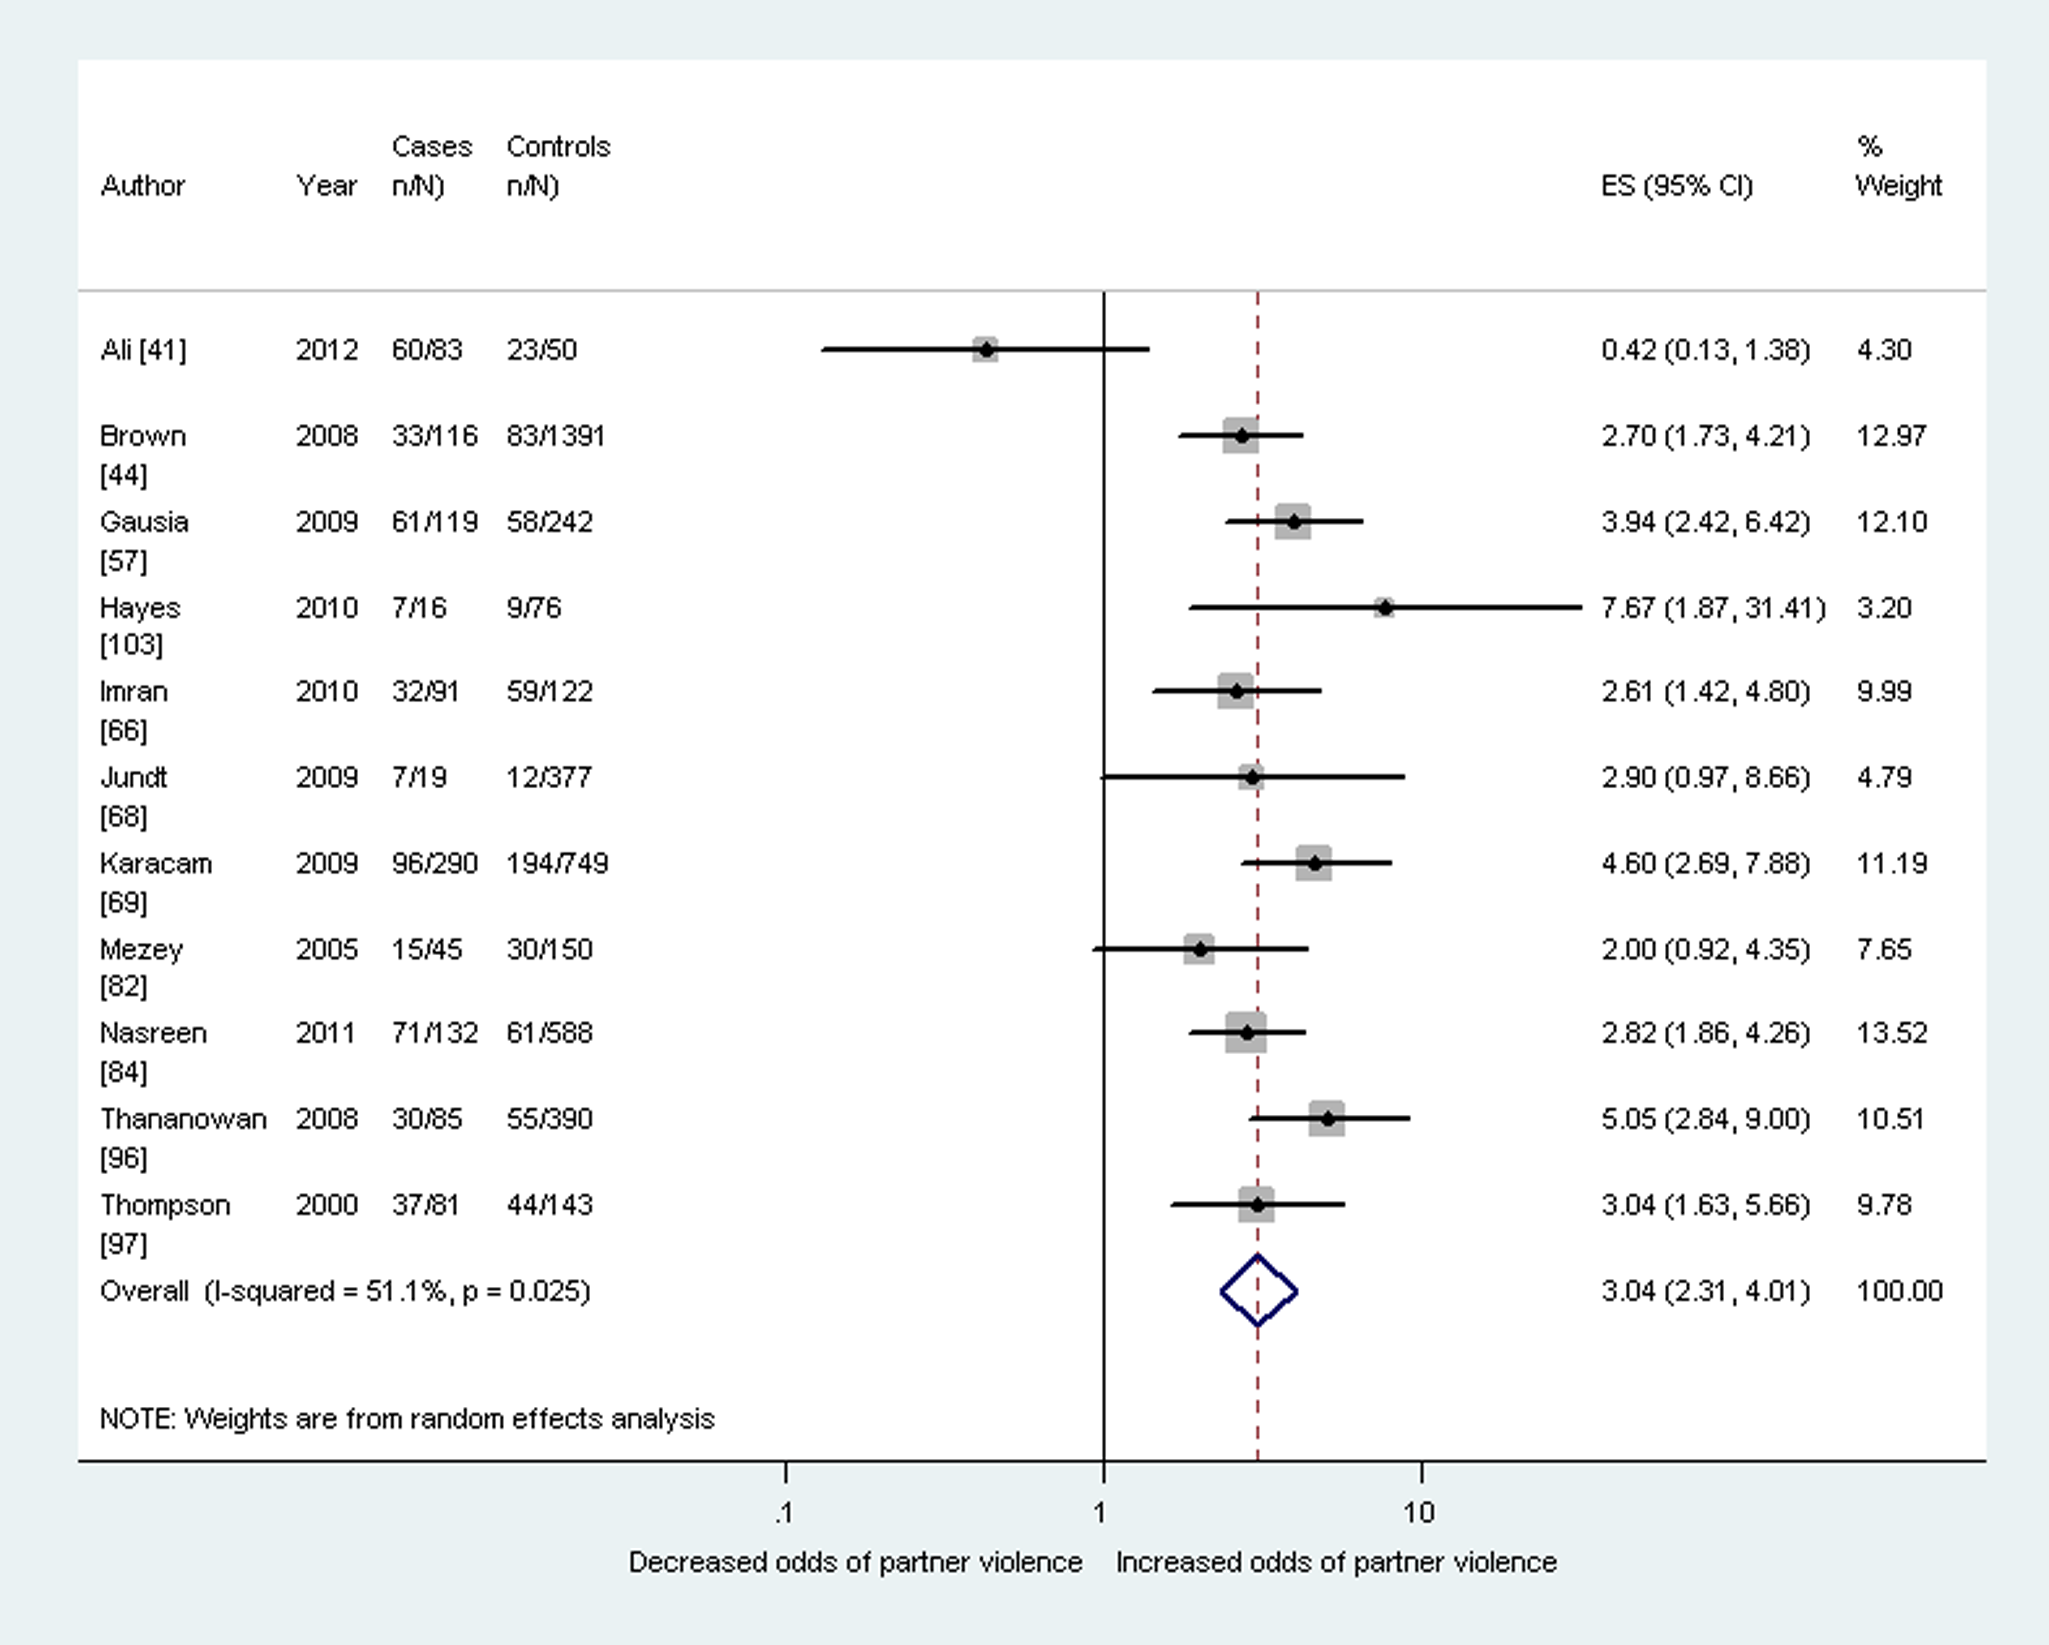 Meta-analysis of the association between antenatal depression and any lifetime domestic violence (cross-sectional studies).